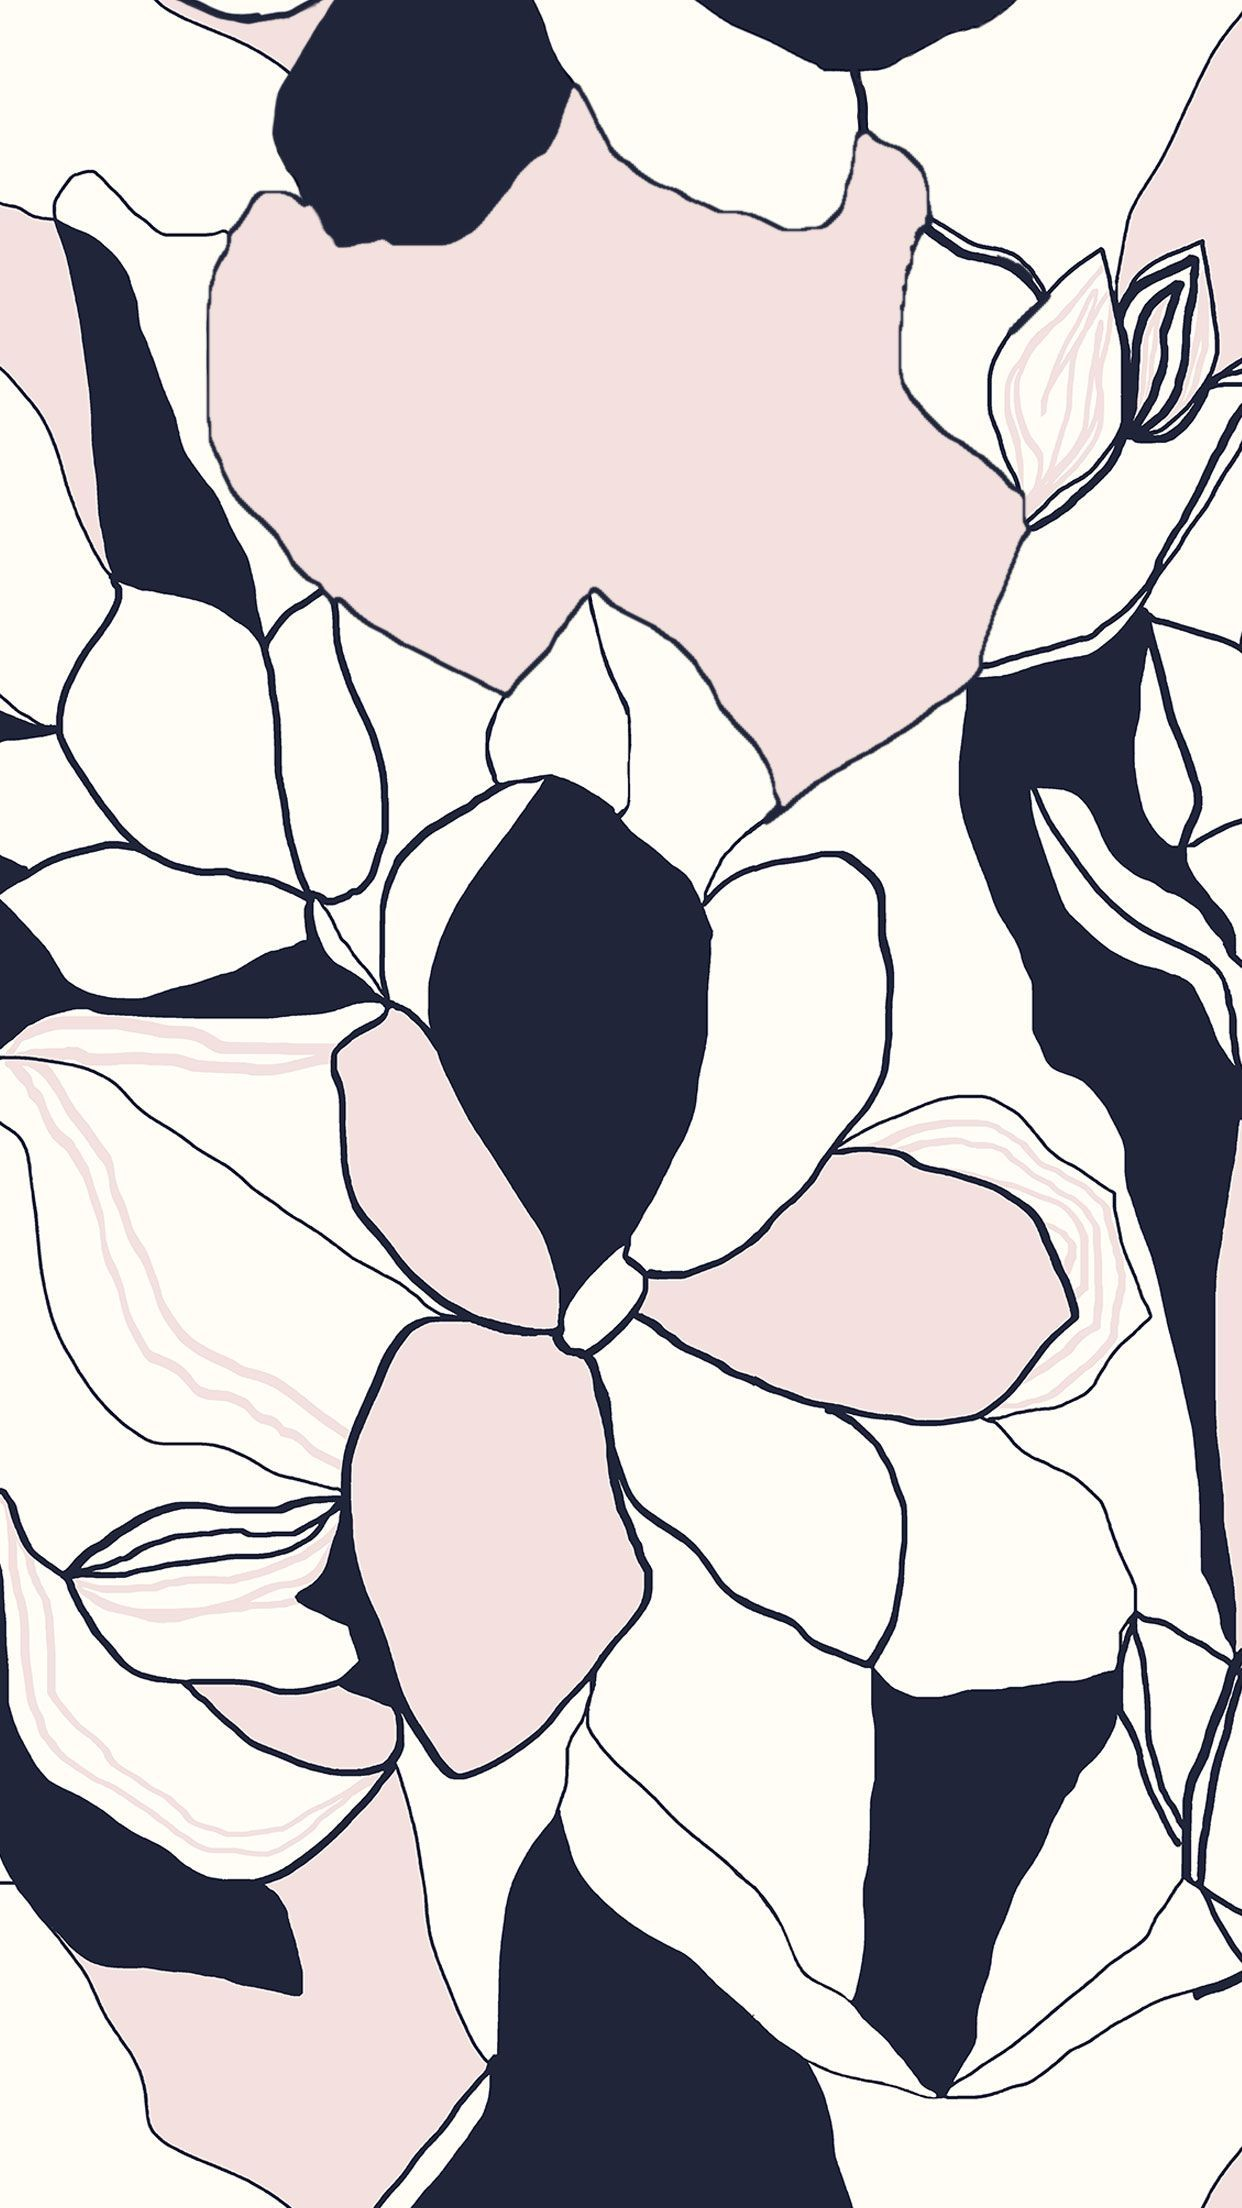 Bold abstract floral pattern design ideas and inspiration